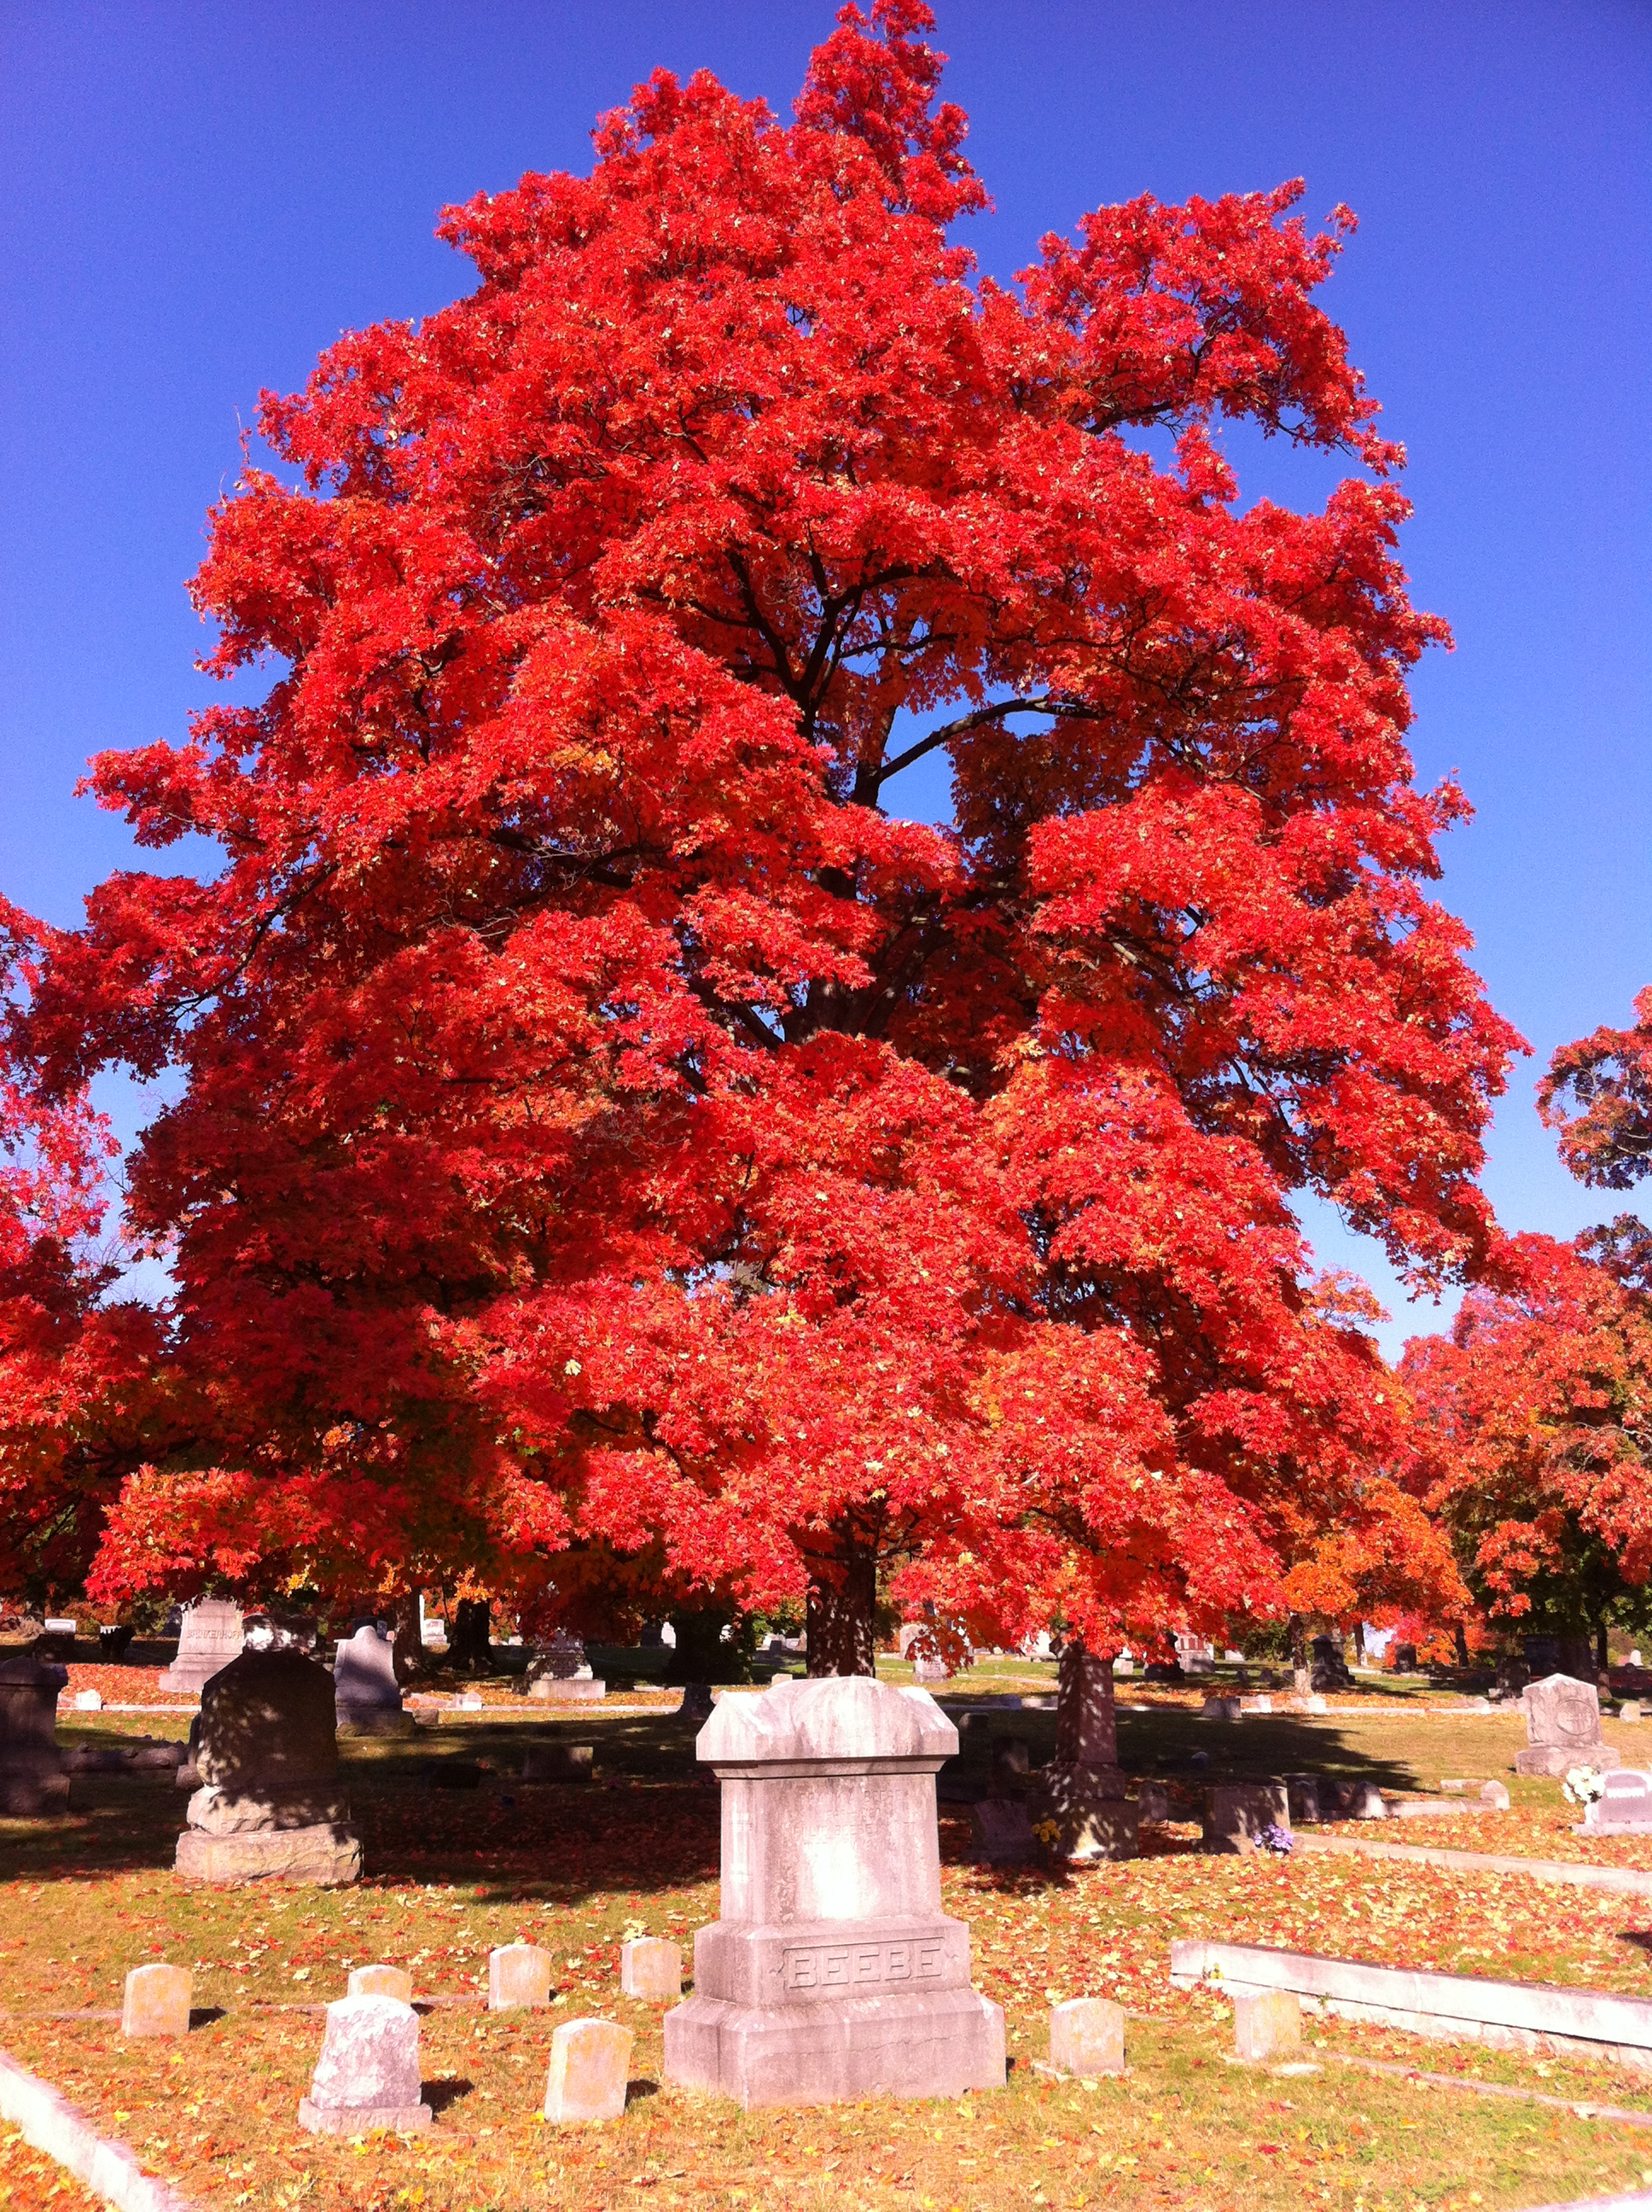 Park Cemetery is full of old trees and is a great spot to view fall color that Carthage is known for throughout the region. An annual festival (3rd Saturday of October) is called Maple Leaf Festival and takes place throughout town.